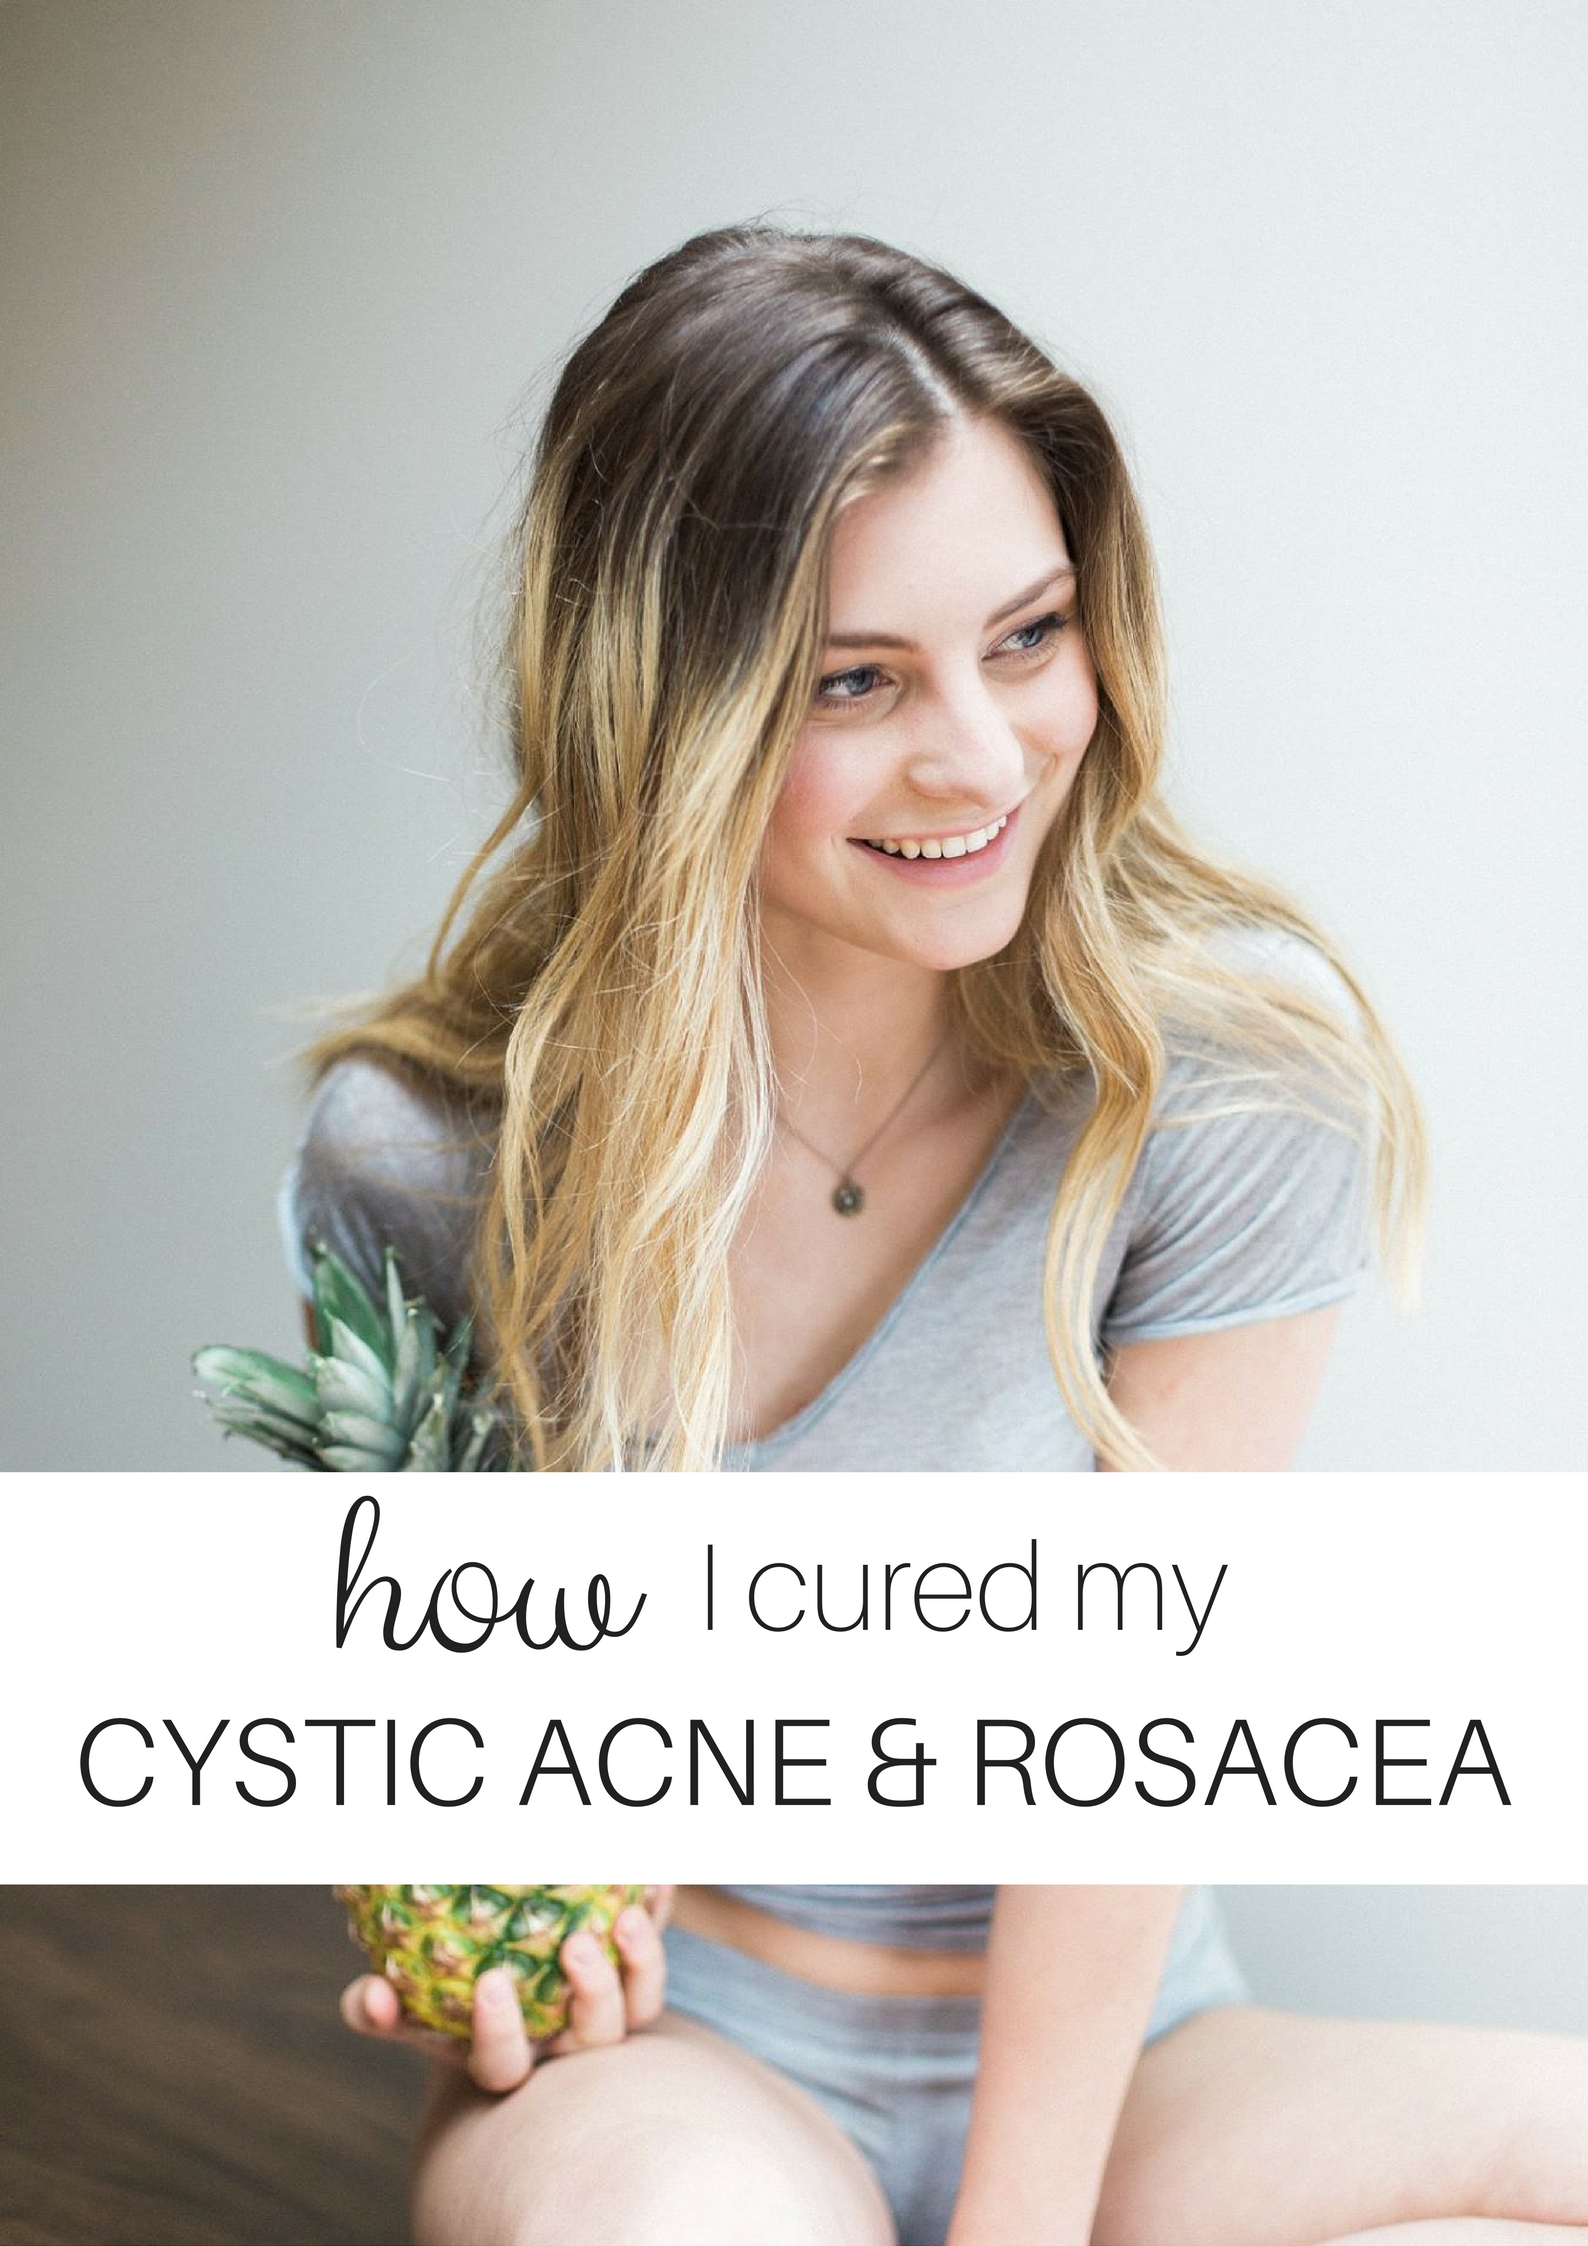 How I Cured my Cystic Acne & Rosacea